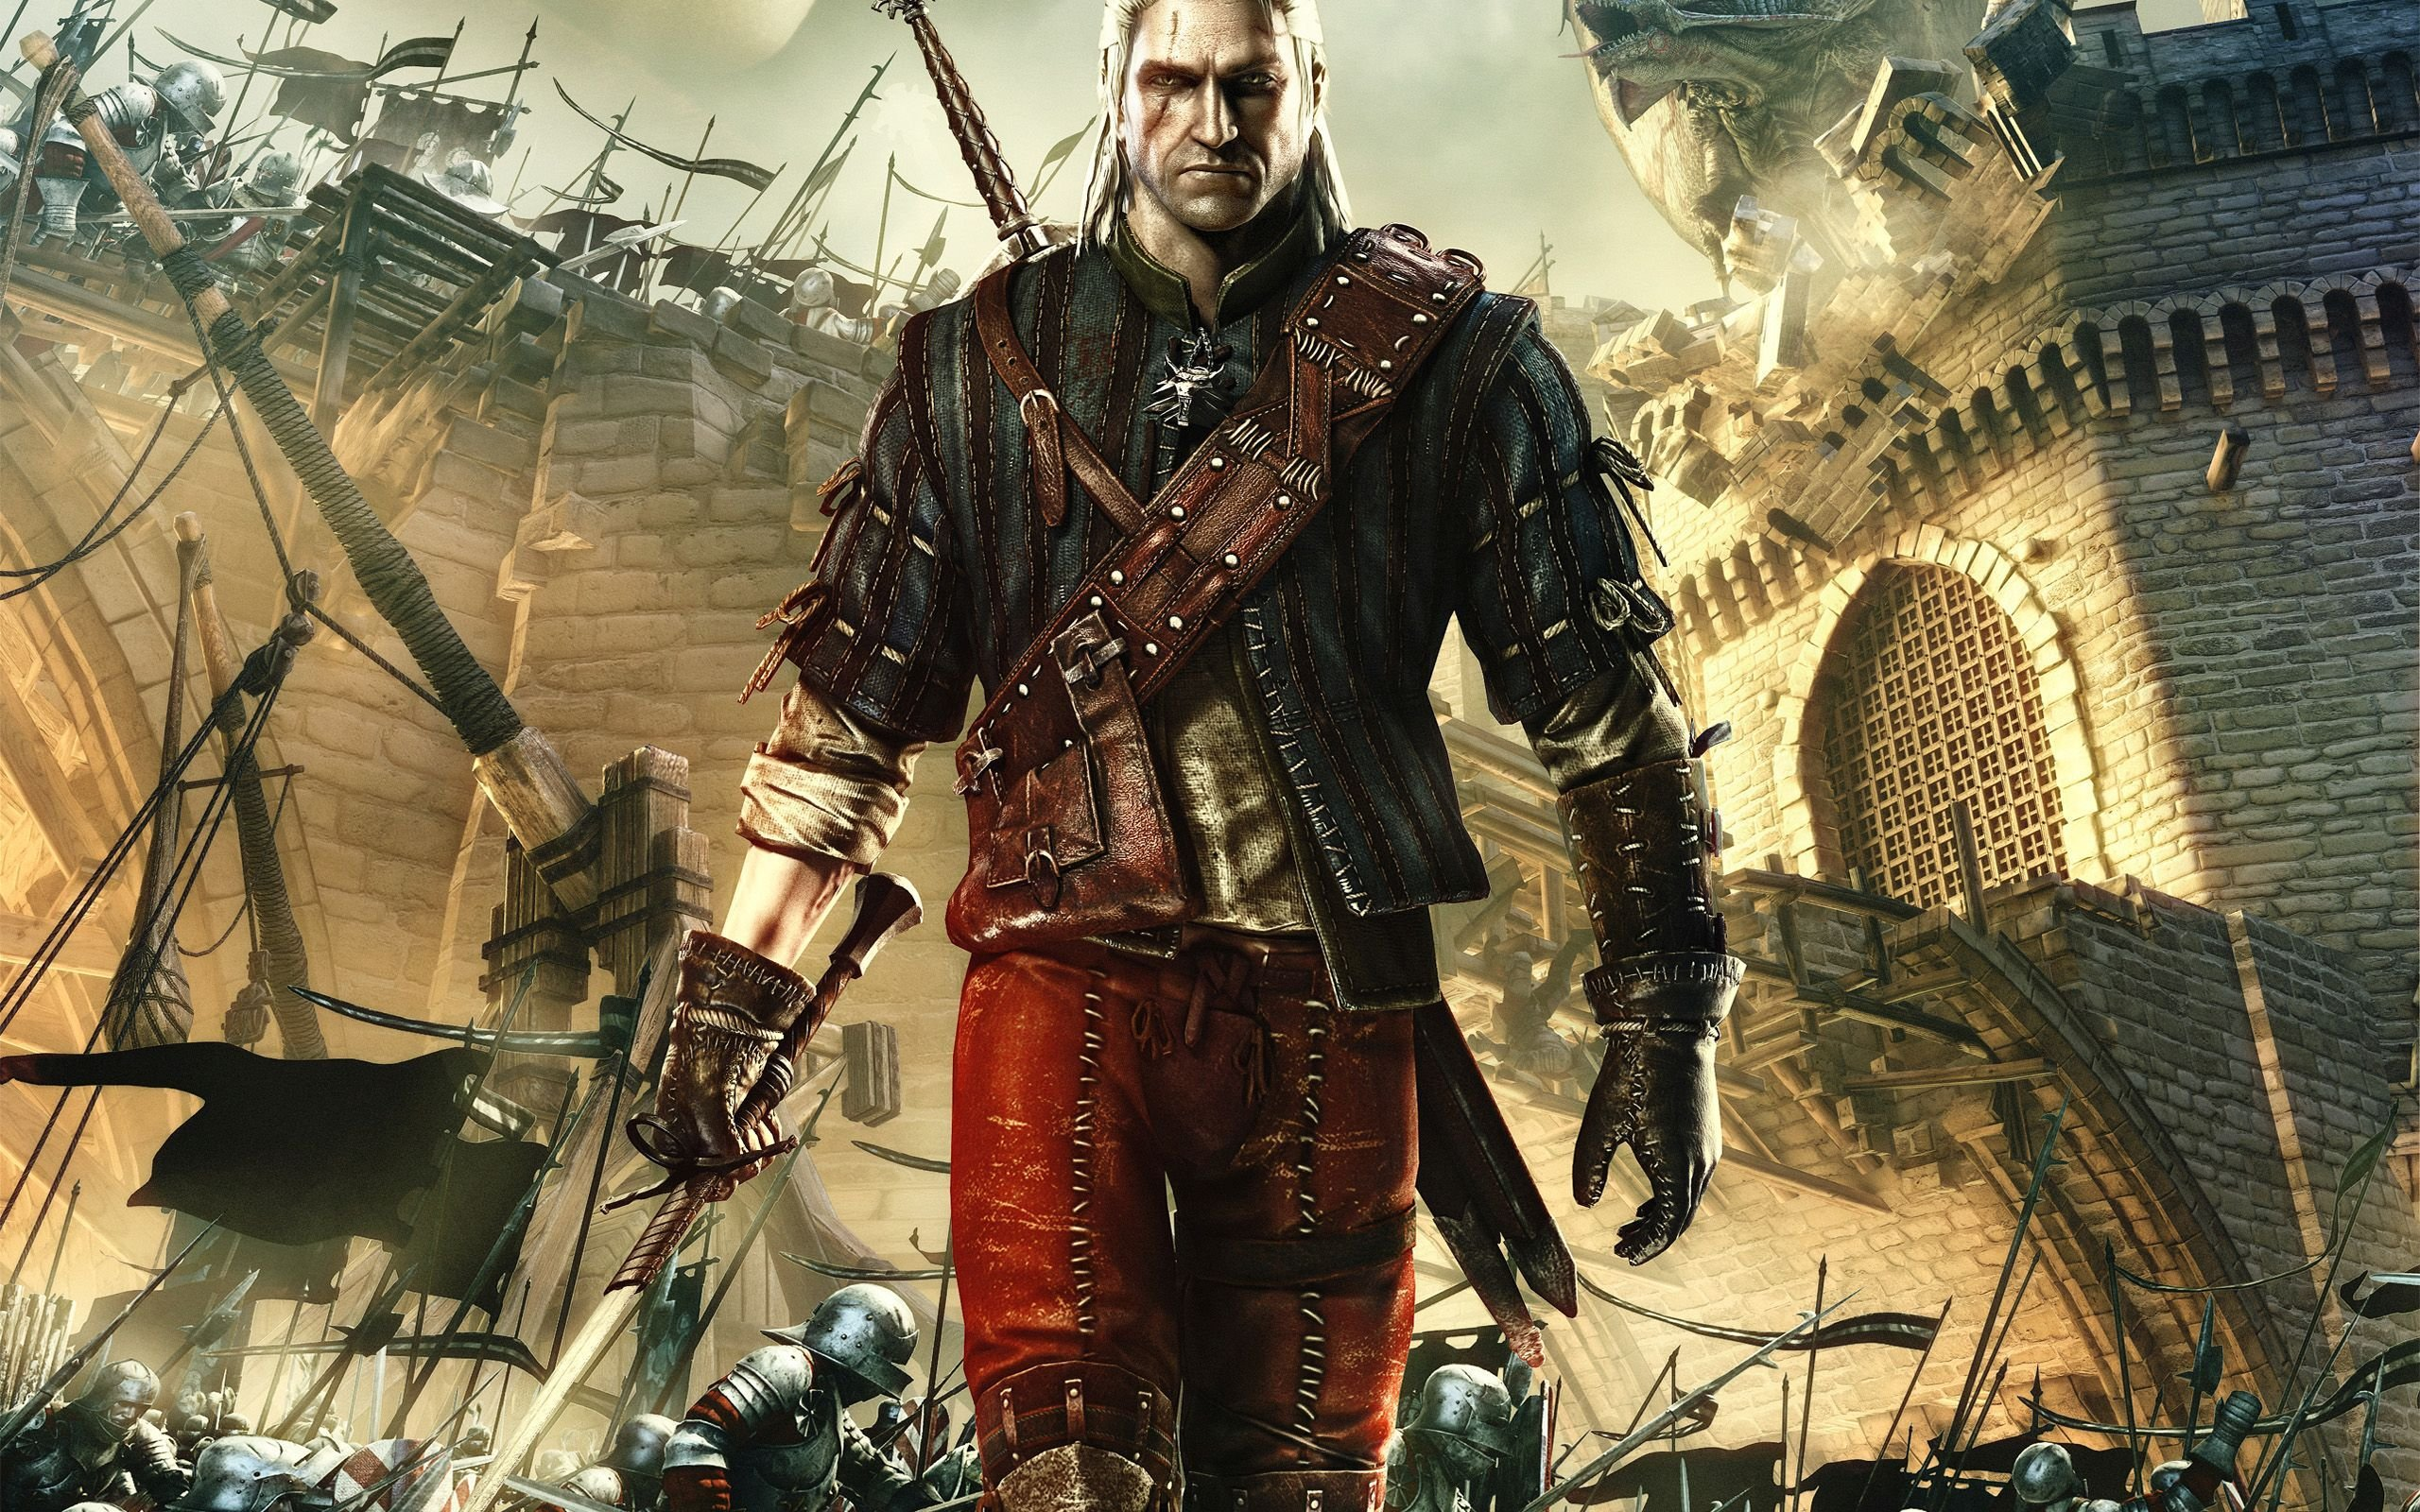 3d My Name Live Wallpaper Apk Download Wallpaper The Witcher 2 Hd 36 Dzbc Org